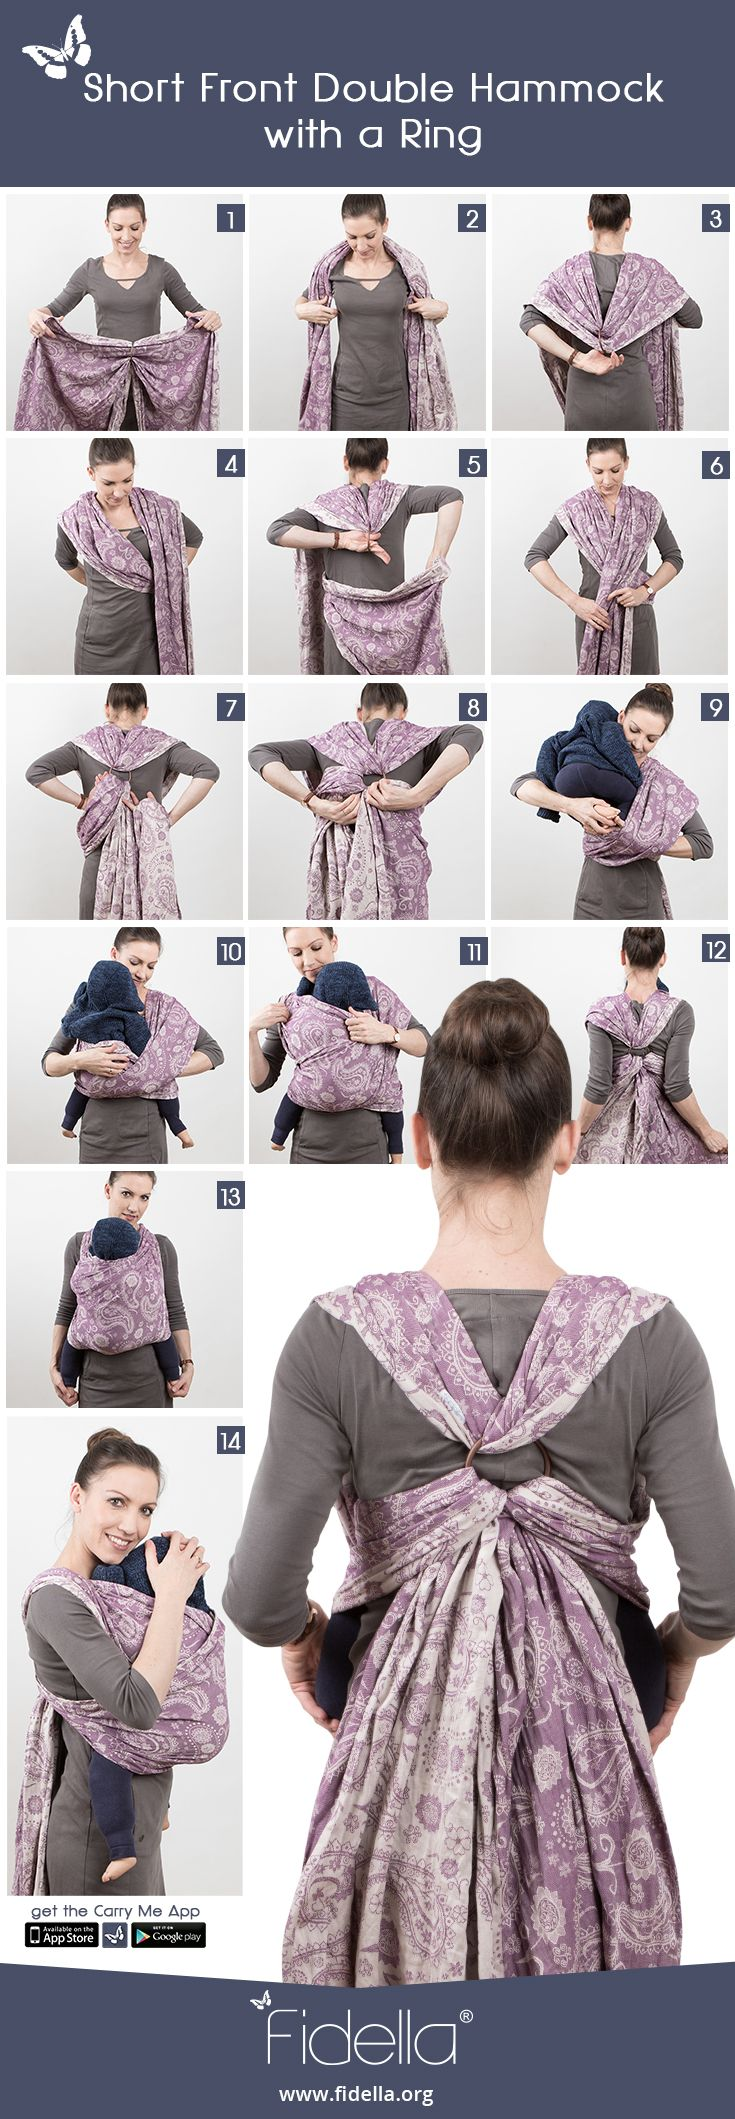 All Fidella® babywraps, baby carriers, mei tais and ring slings for modern parents